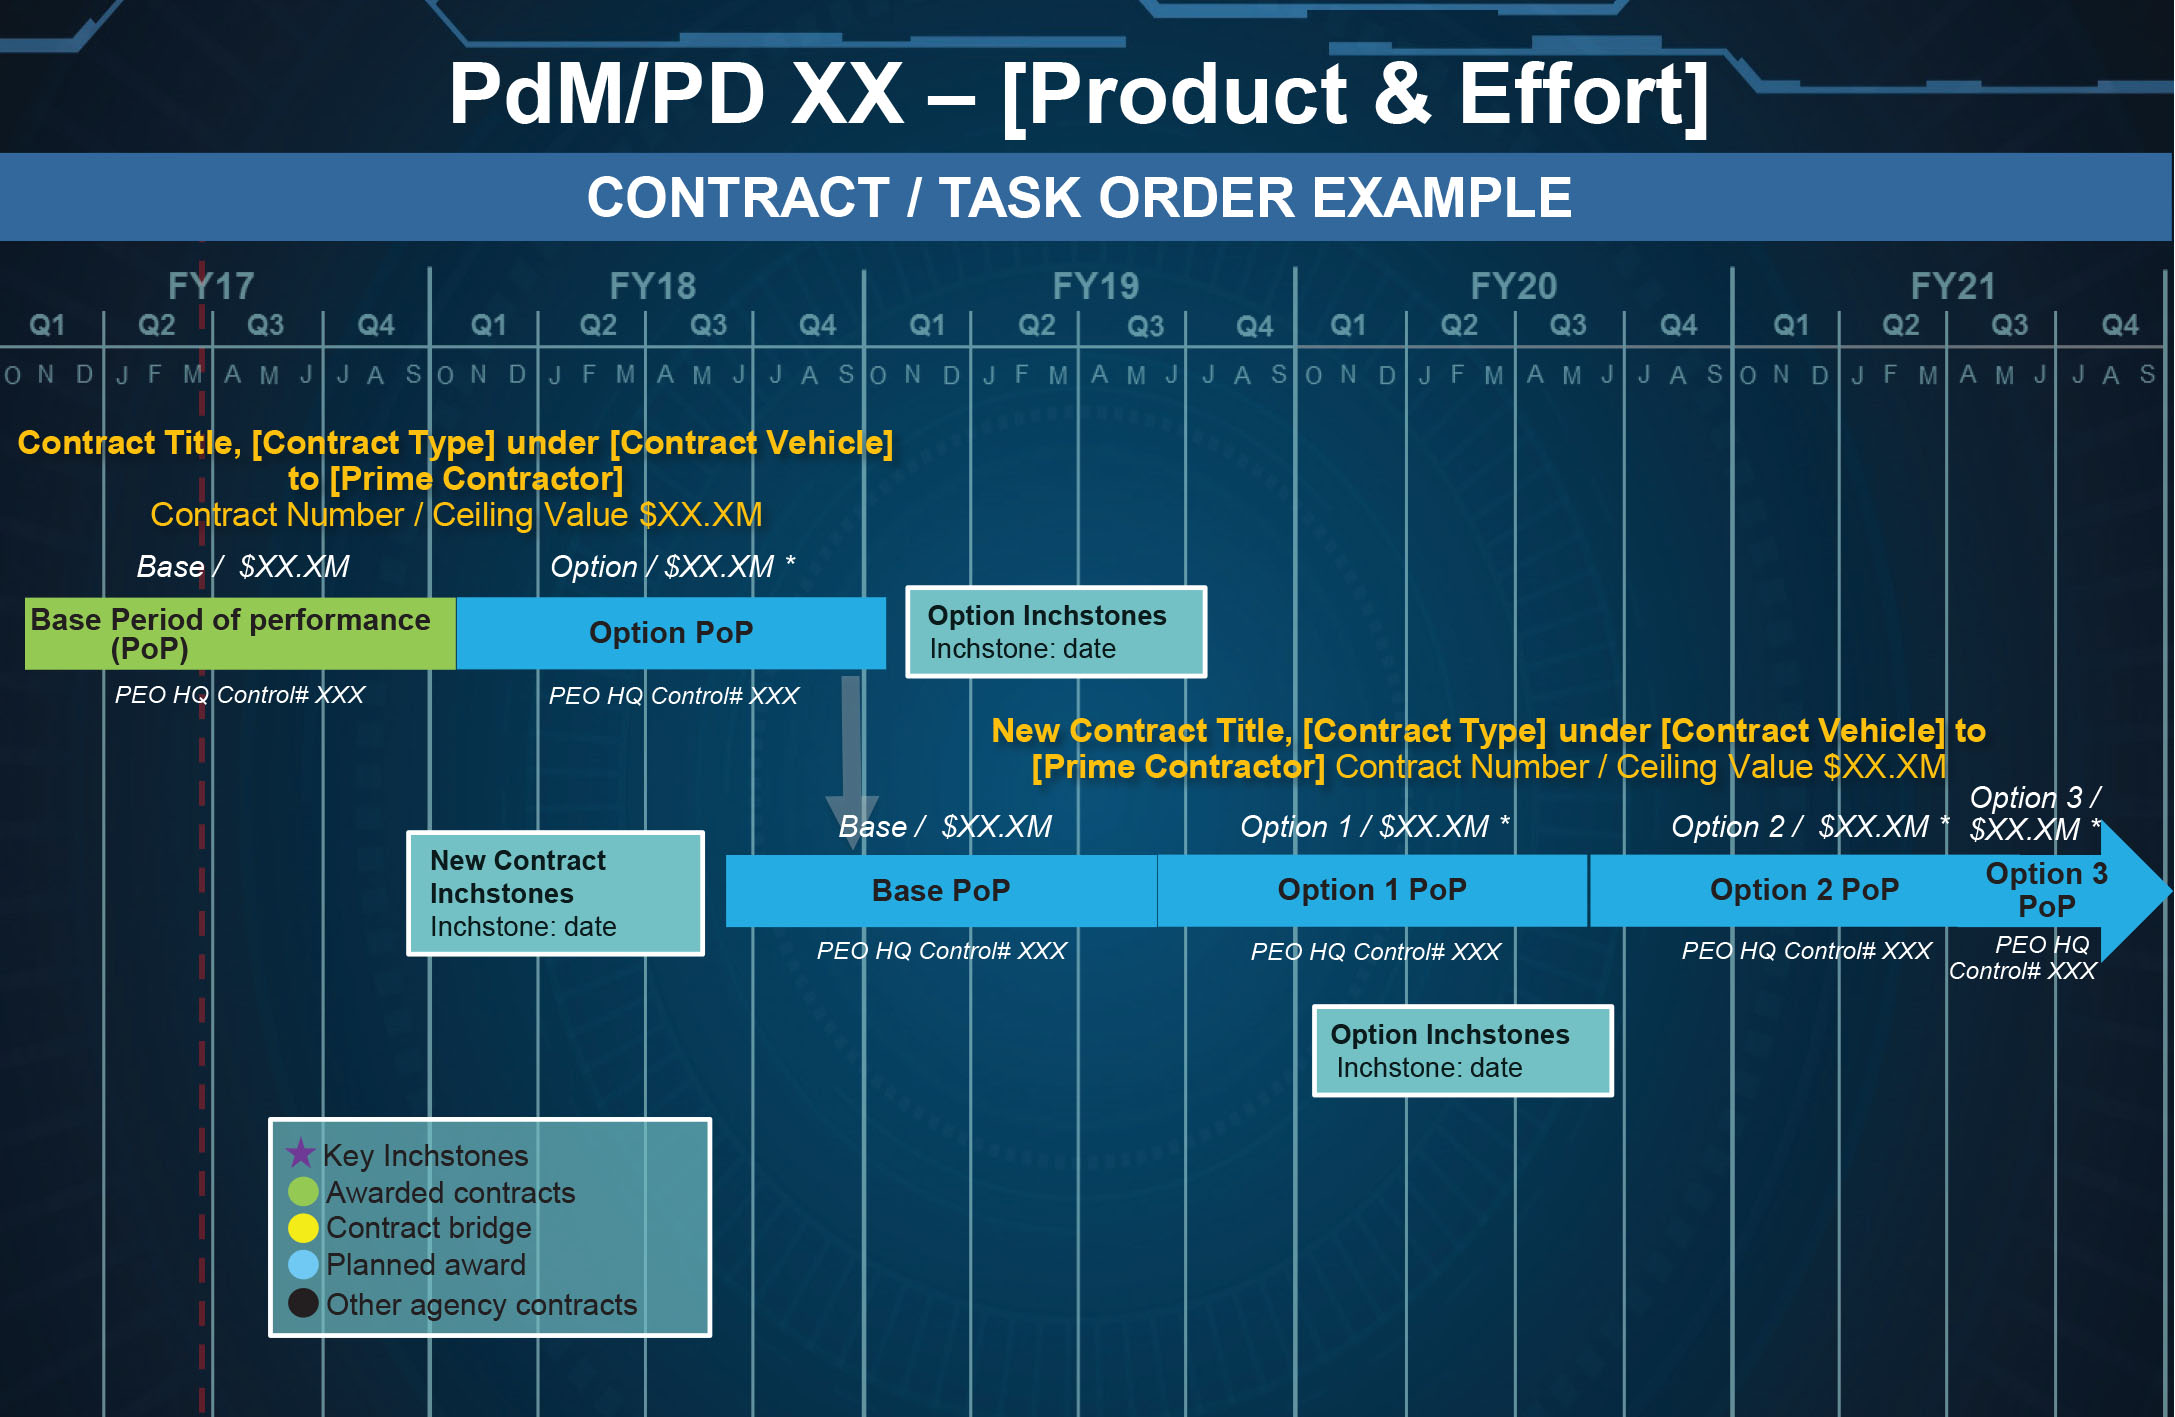 This screenshot from the Contract Management Review Board, with contract specifics removed, represents a product or project manager's current and projected contracts for a five-year period. The five-year period was chosen to allow users to ensure proper transitions between periods of performance by tracking when contracts are due to expire and planning for follow-on acquisition requirement packages. The system is updated in real time so that users track the most accurate information. The dotted red line on the left marks the current date, and the key in the bottom left corner identifies which contracts have been awarded and which are in the planning stages. The down arrow at the beginning of FY19 indicates the date that the first effort is scheduled to transition to the next project award below. (Image by Justin Rakowski, PEO IEW&S)